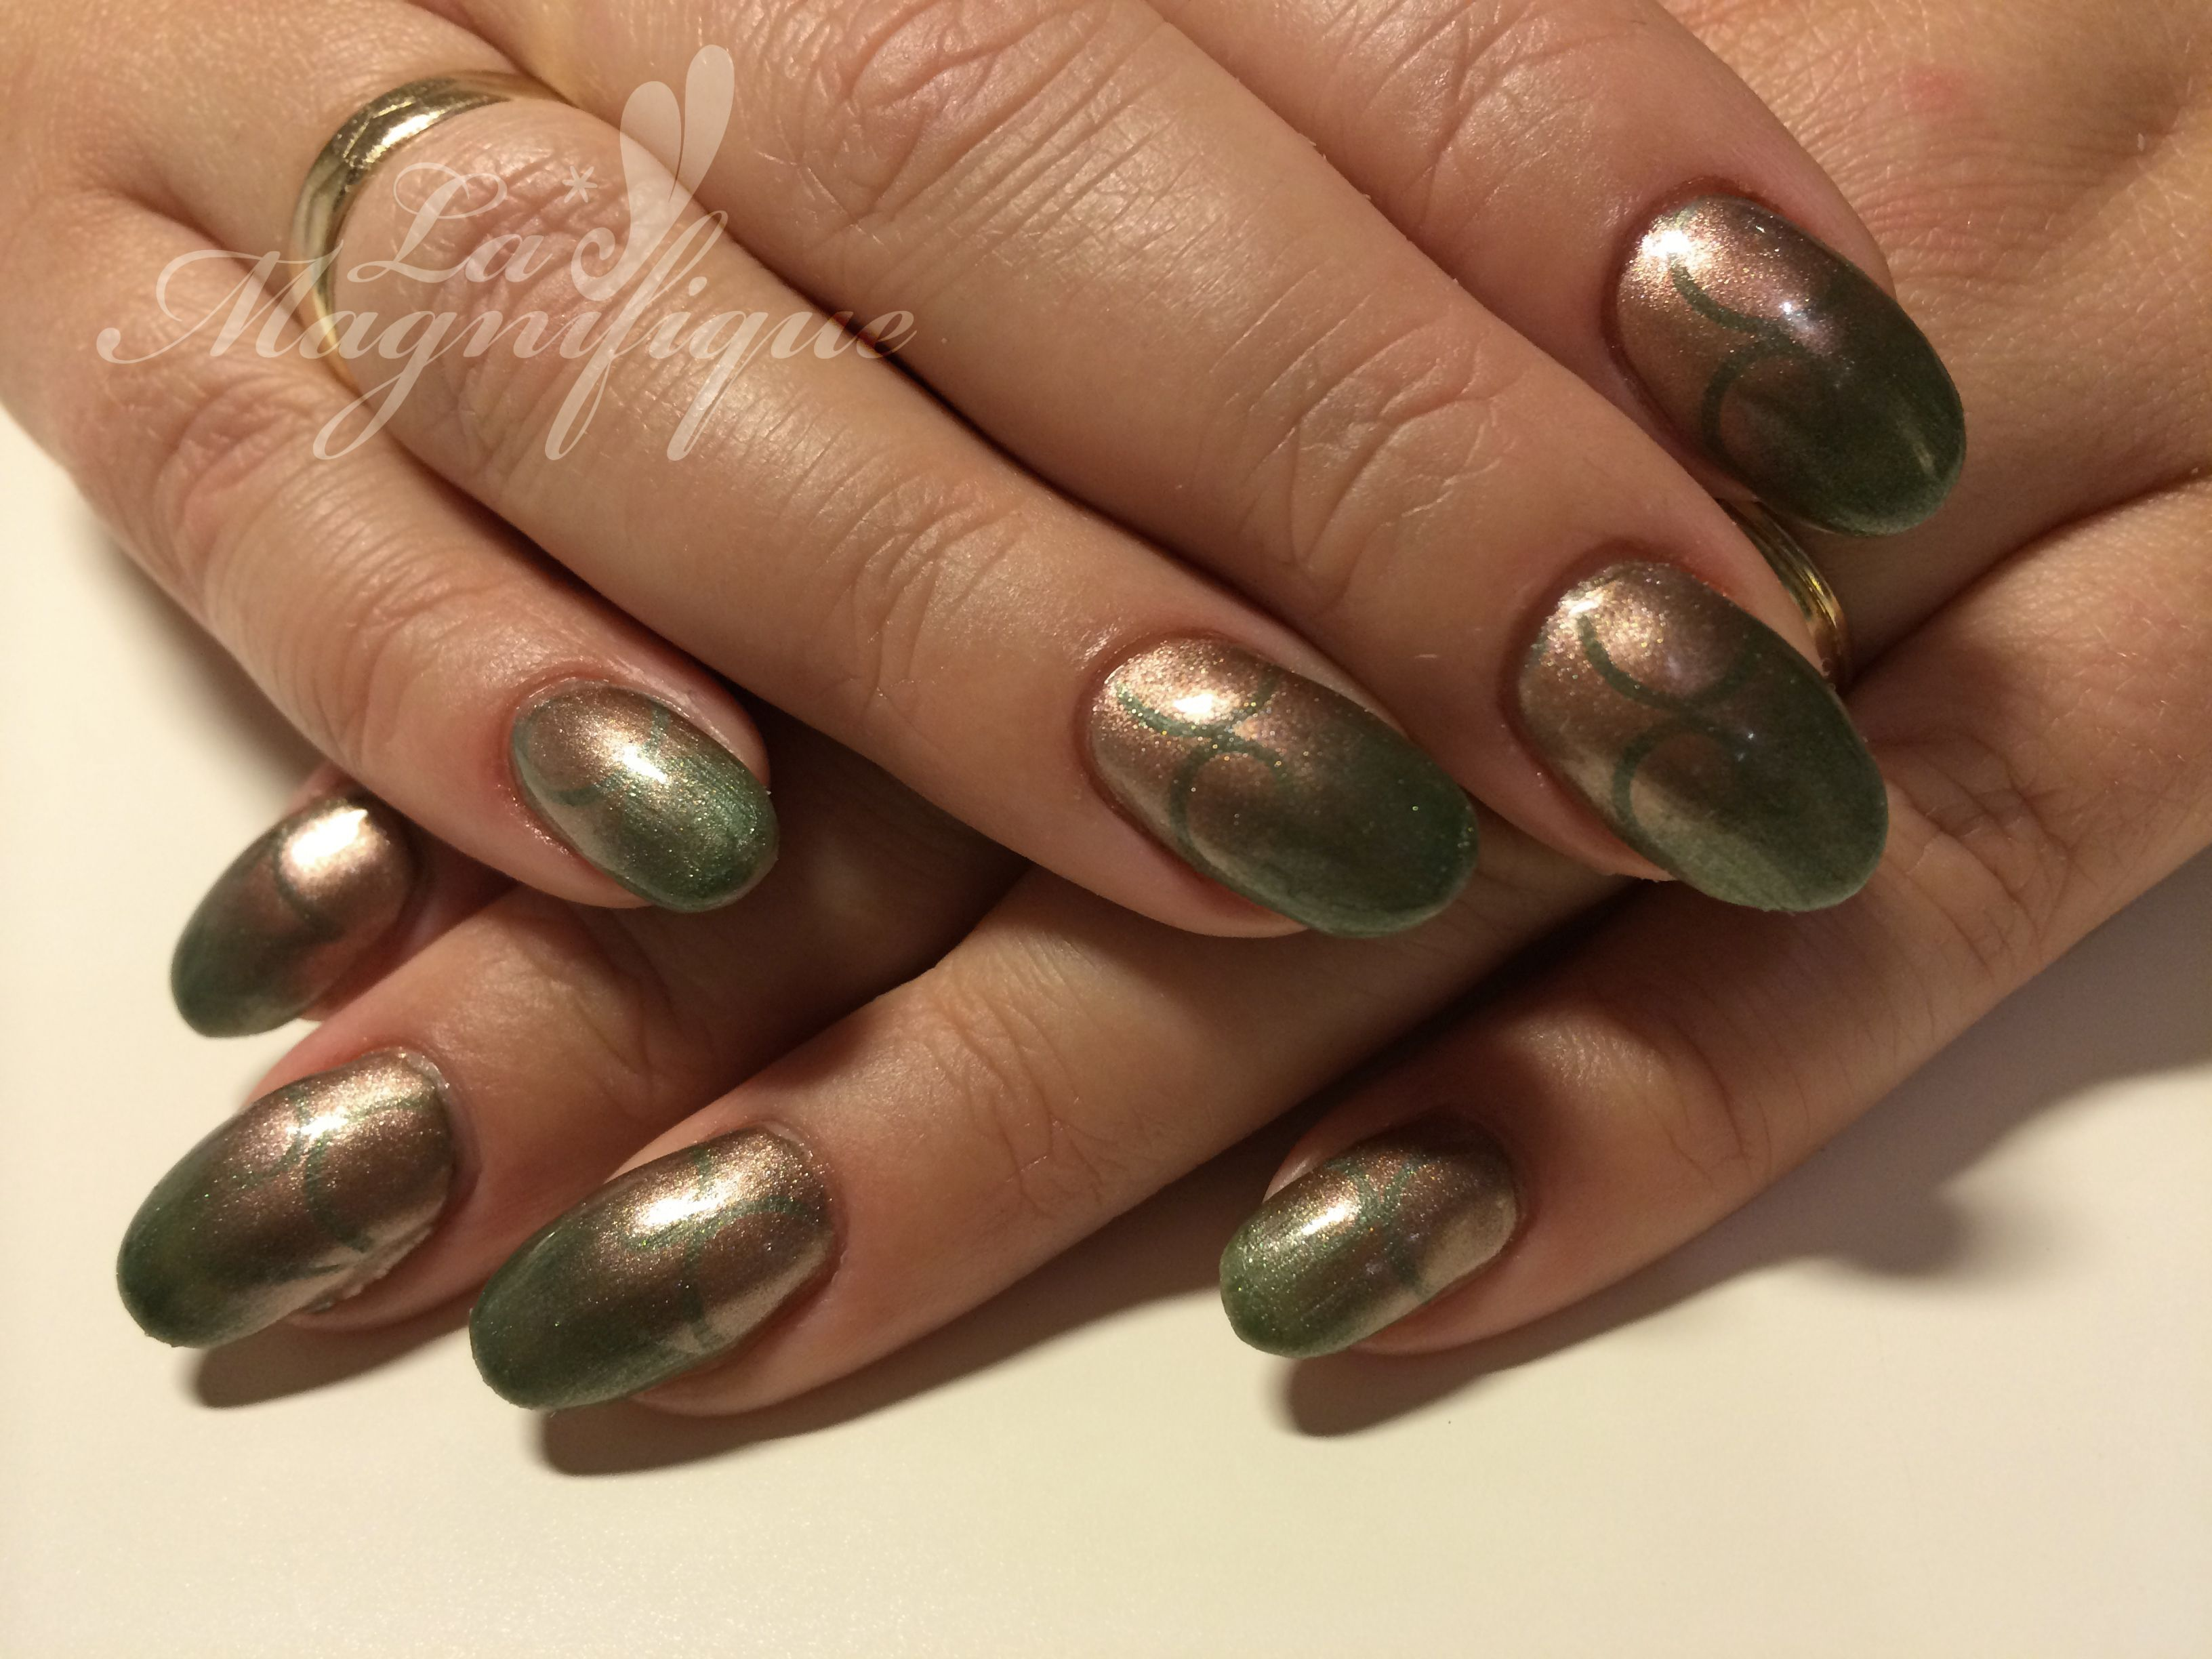 Shellac frosted glen blush bronze additive cnd shellac shellac frosted glen blush bronze additive cnd bronzeblushshellacnail artnail artsbrushesnailed it prinsesfo Image collections